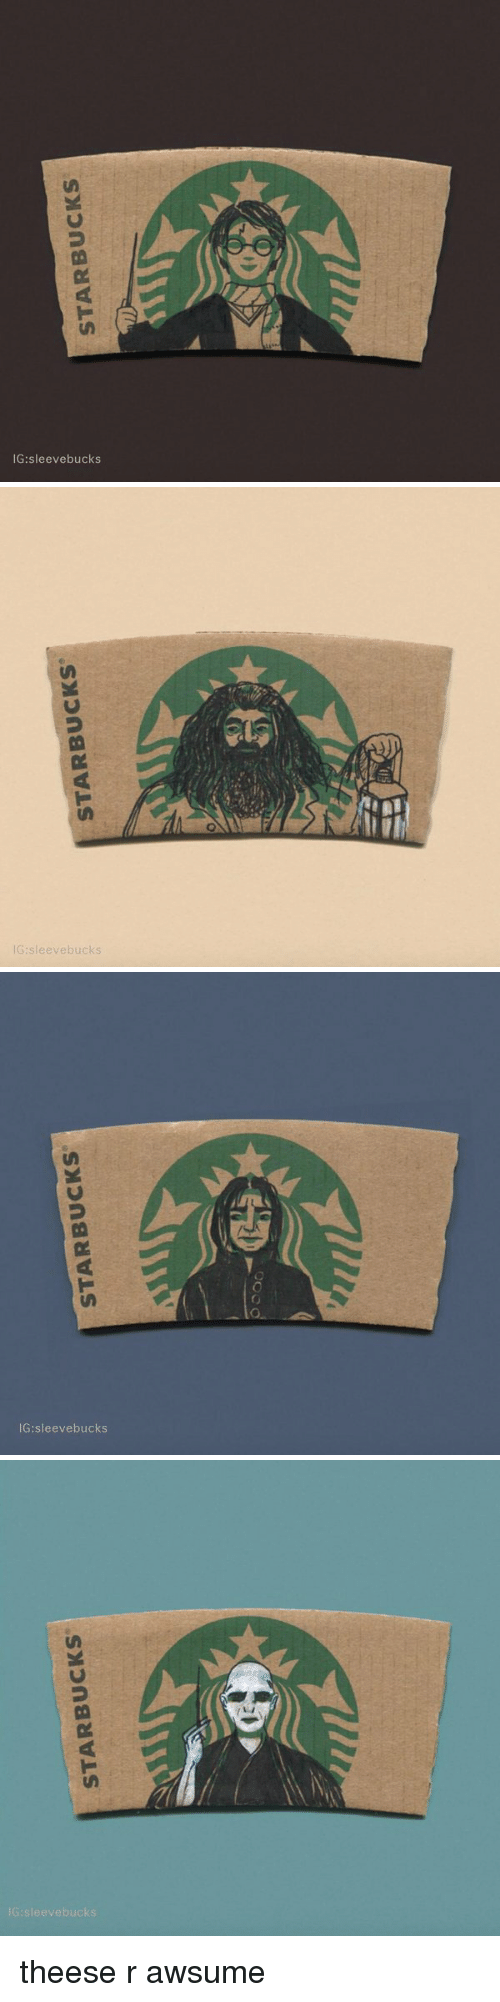 Theese: STARBUCKS  IG:sleevebucks   IG sleeve bucks   STARBUCKS  IG:sleevebucks   STARBUCKS  IGsleevebucks theese r awsume